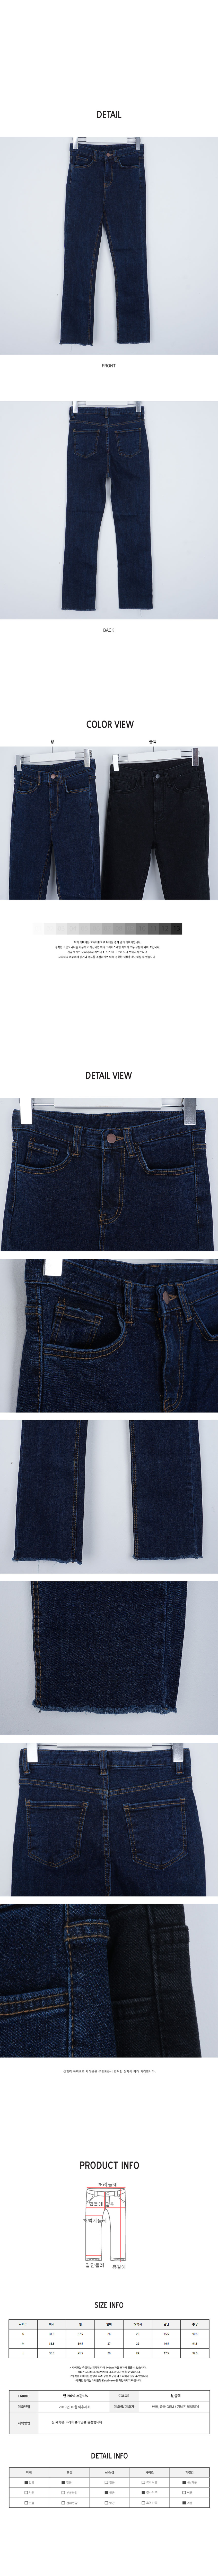 Tods slim jeans